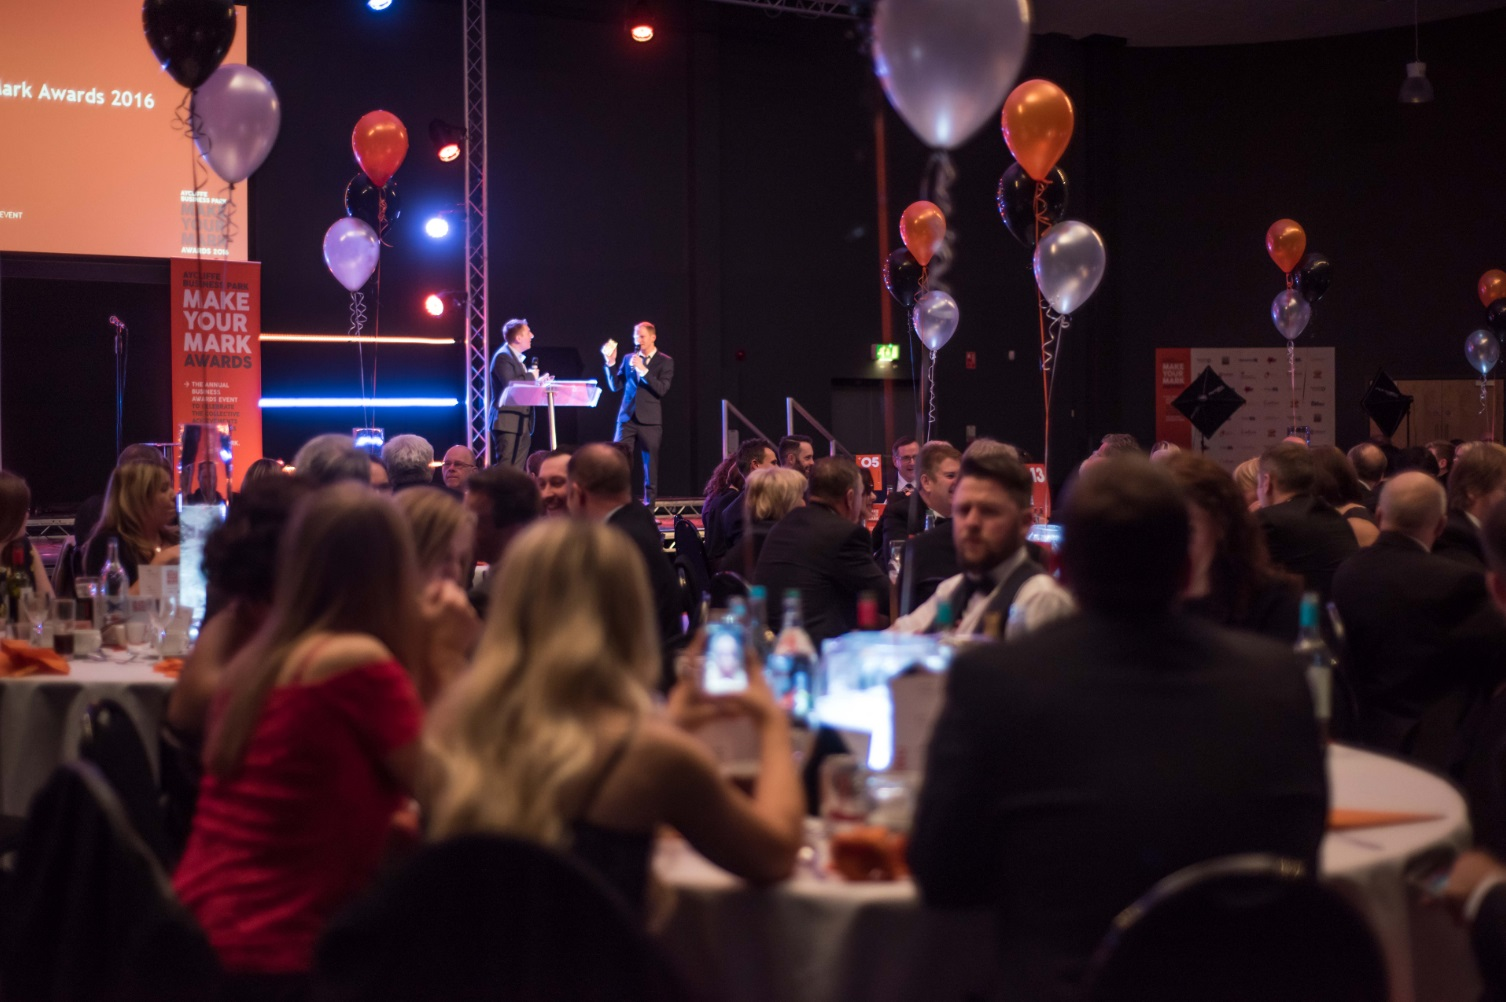 Hundreds of people are expected to gather for the fourth annual Make Your Mark awards event at the Xcel Centre, Aycliffe Business Park, on Thursday May 24.